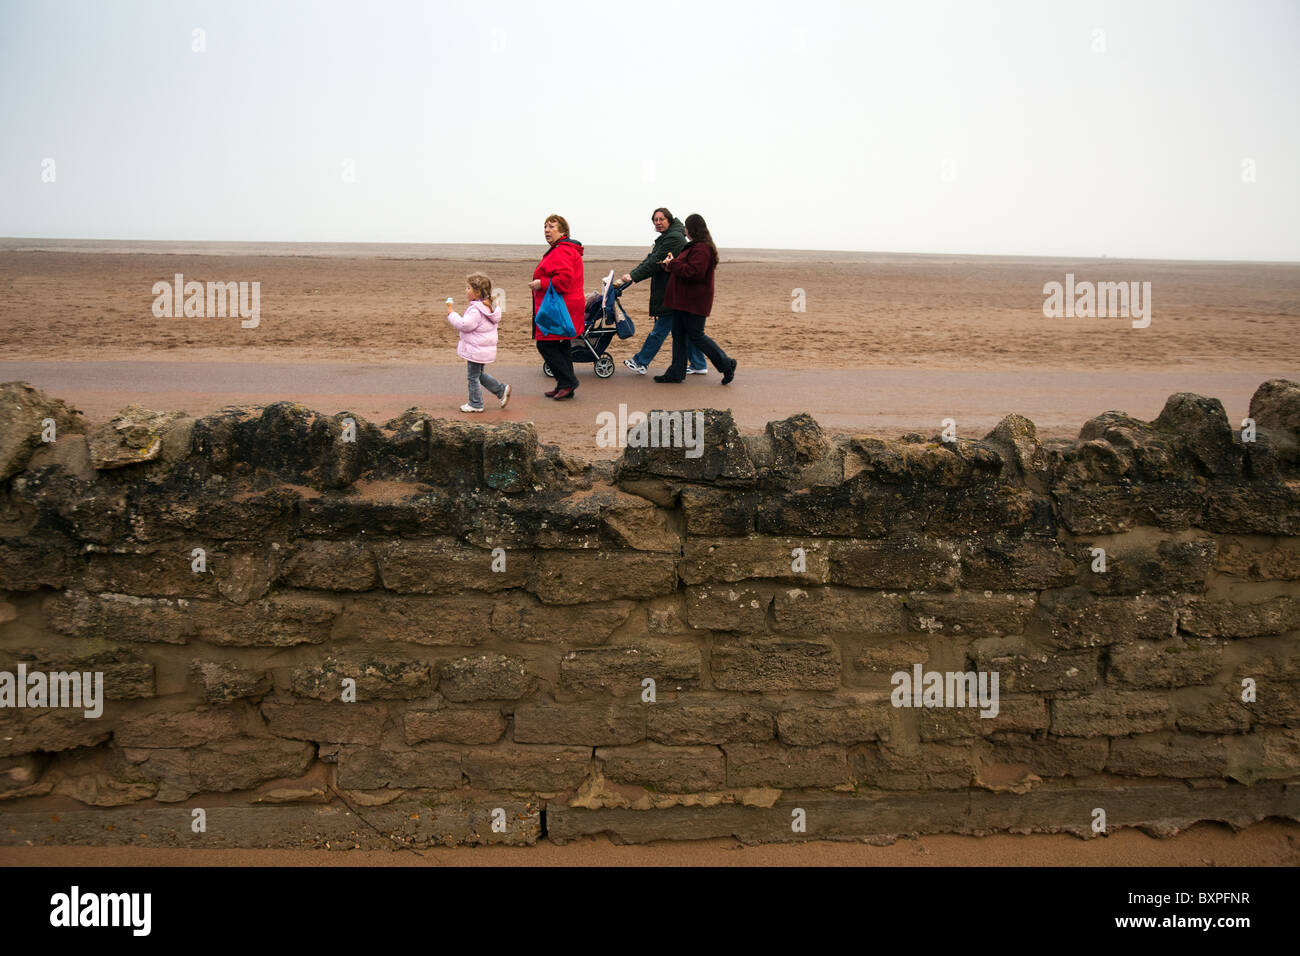 Skegness, Lincolnshire, UK.Skegness, Lincolnshire, UK. A family walk along the sea front promenade in misty weather. Stock Photo